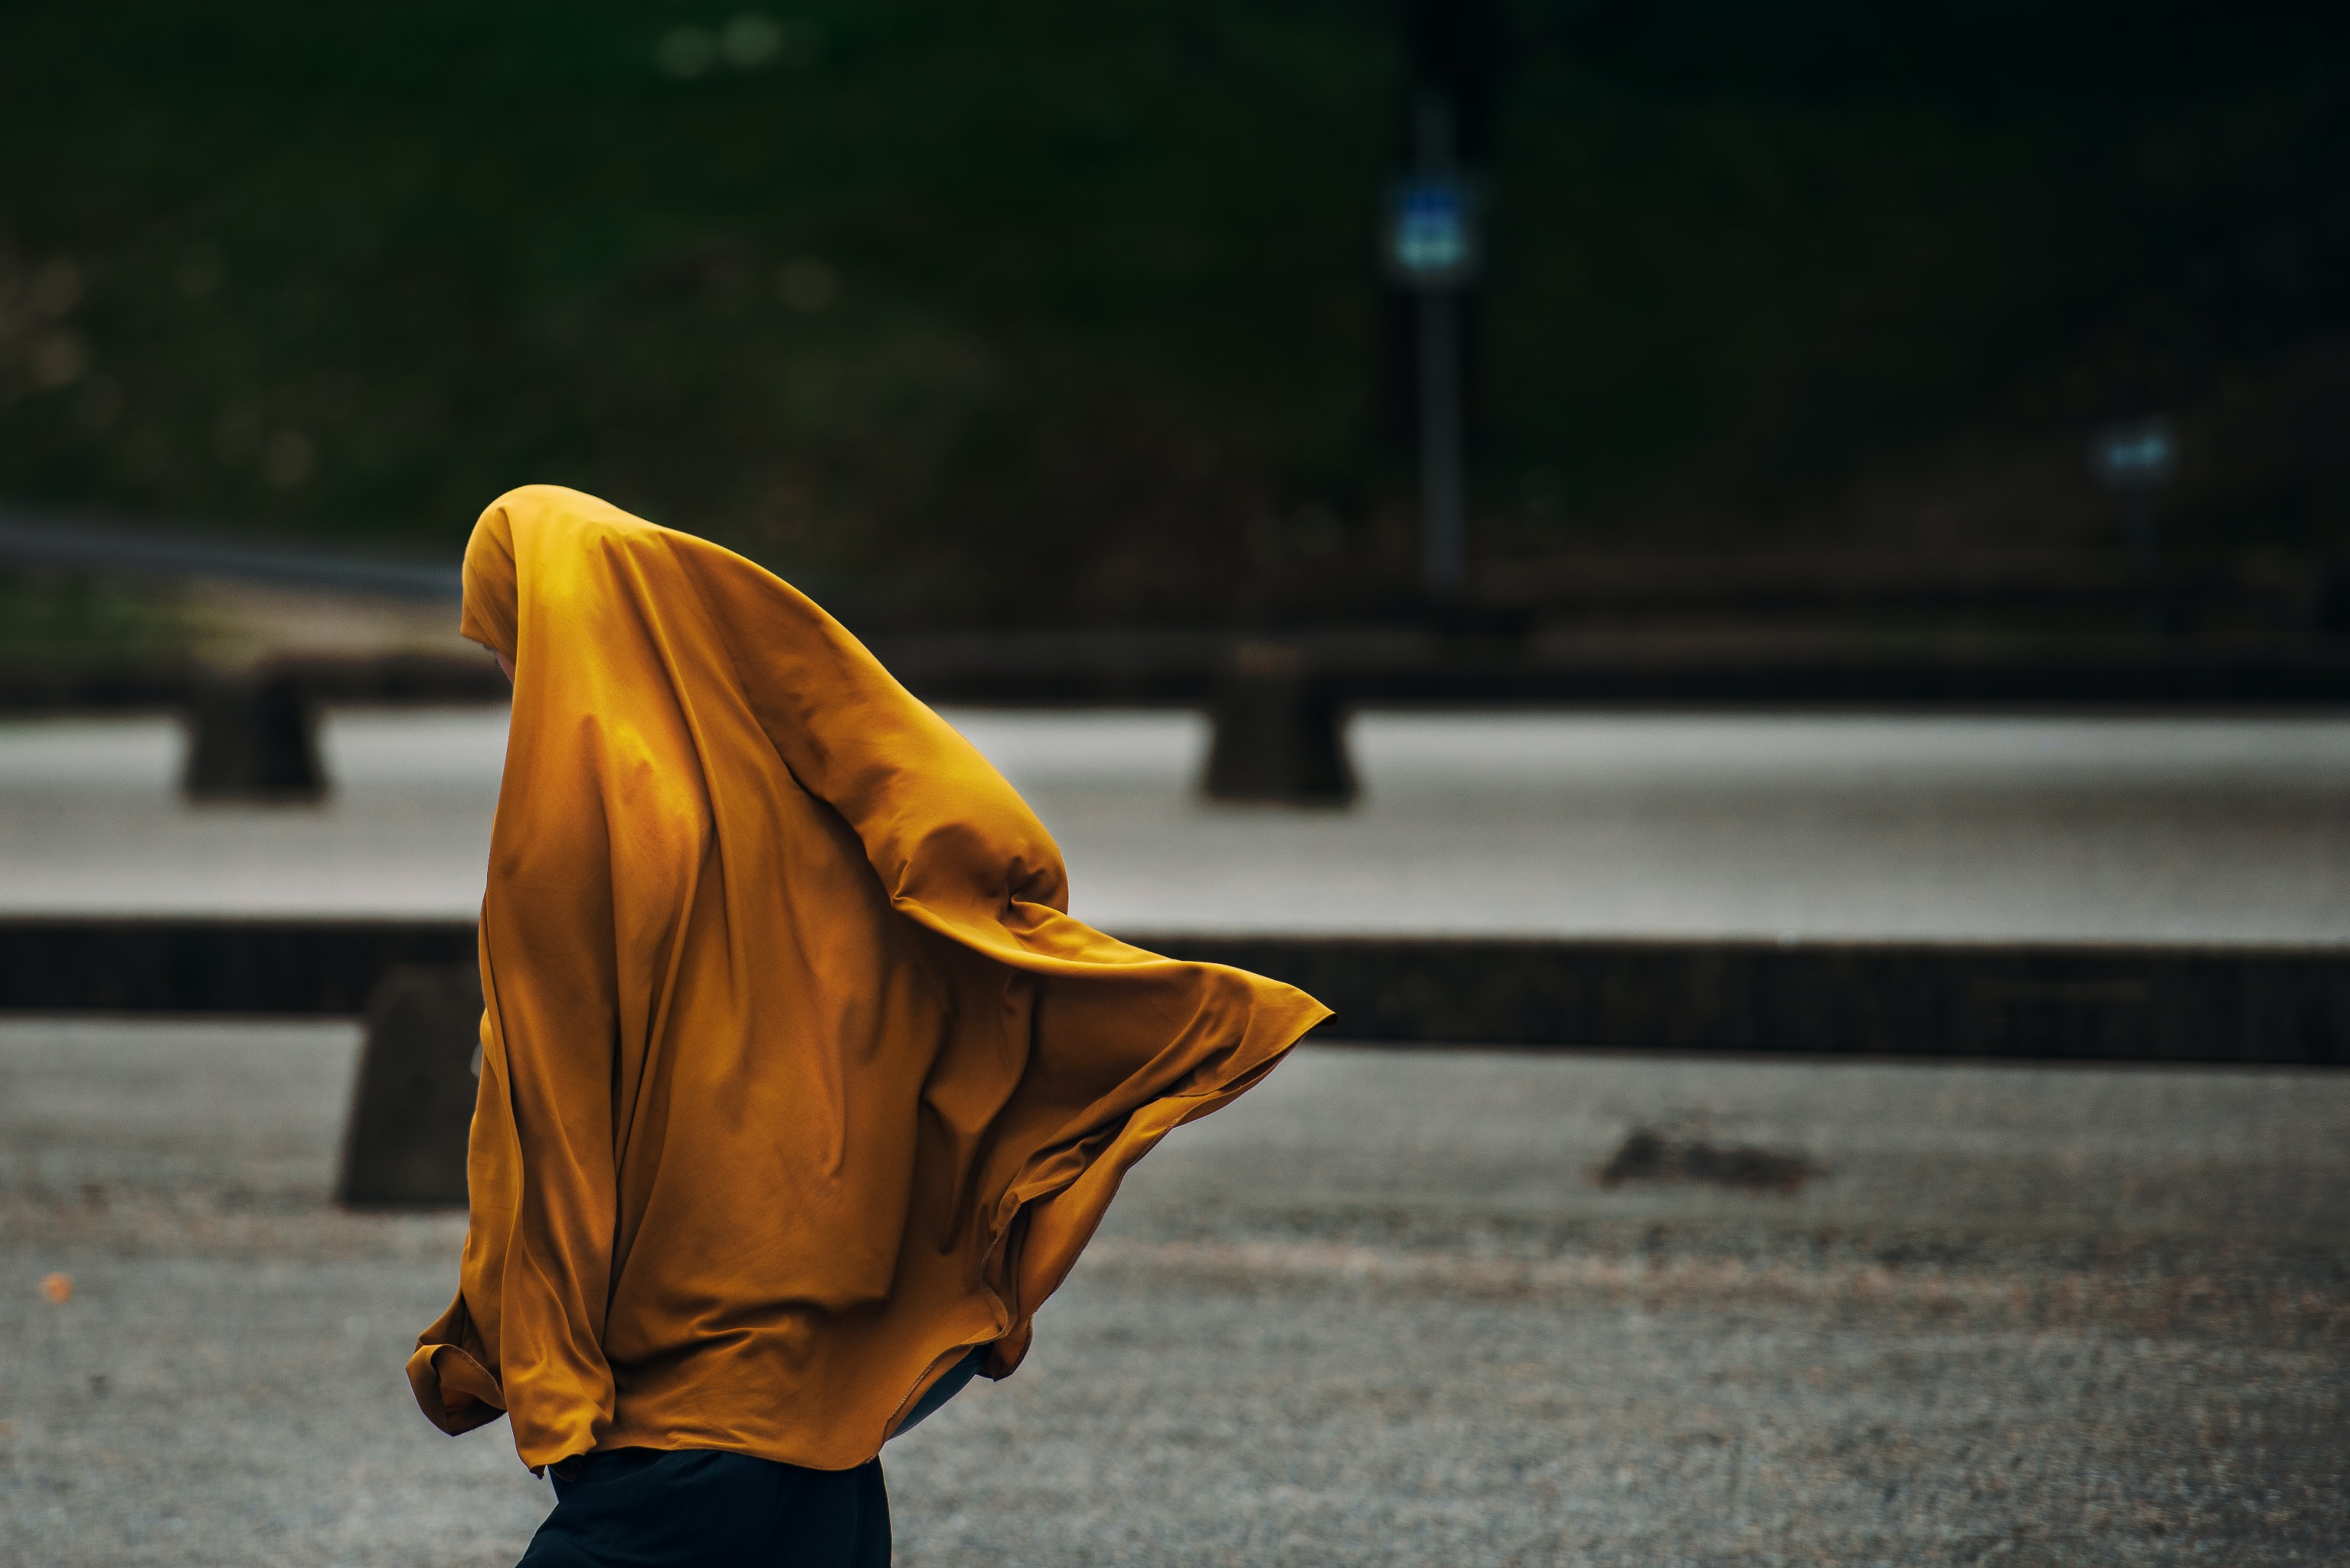 person wearing yellow jacket